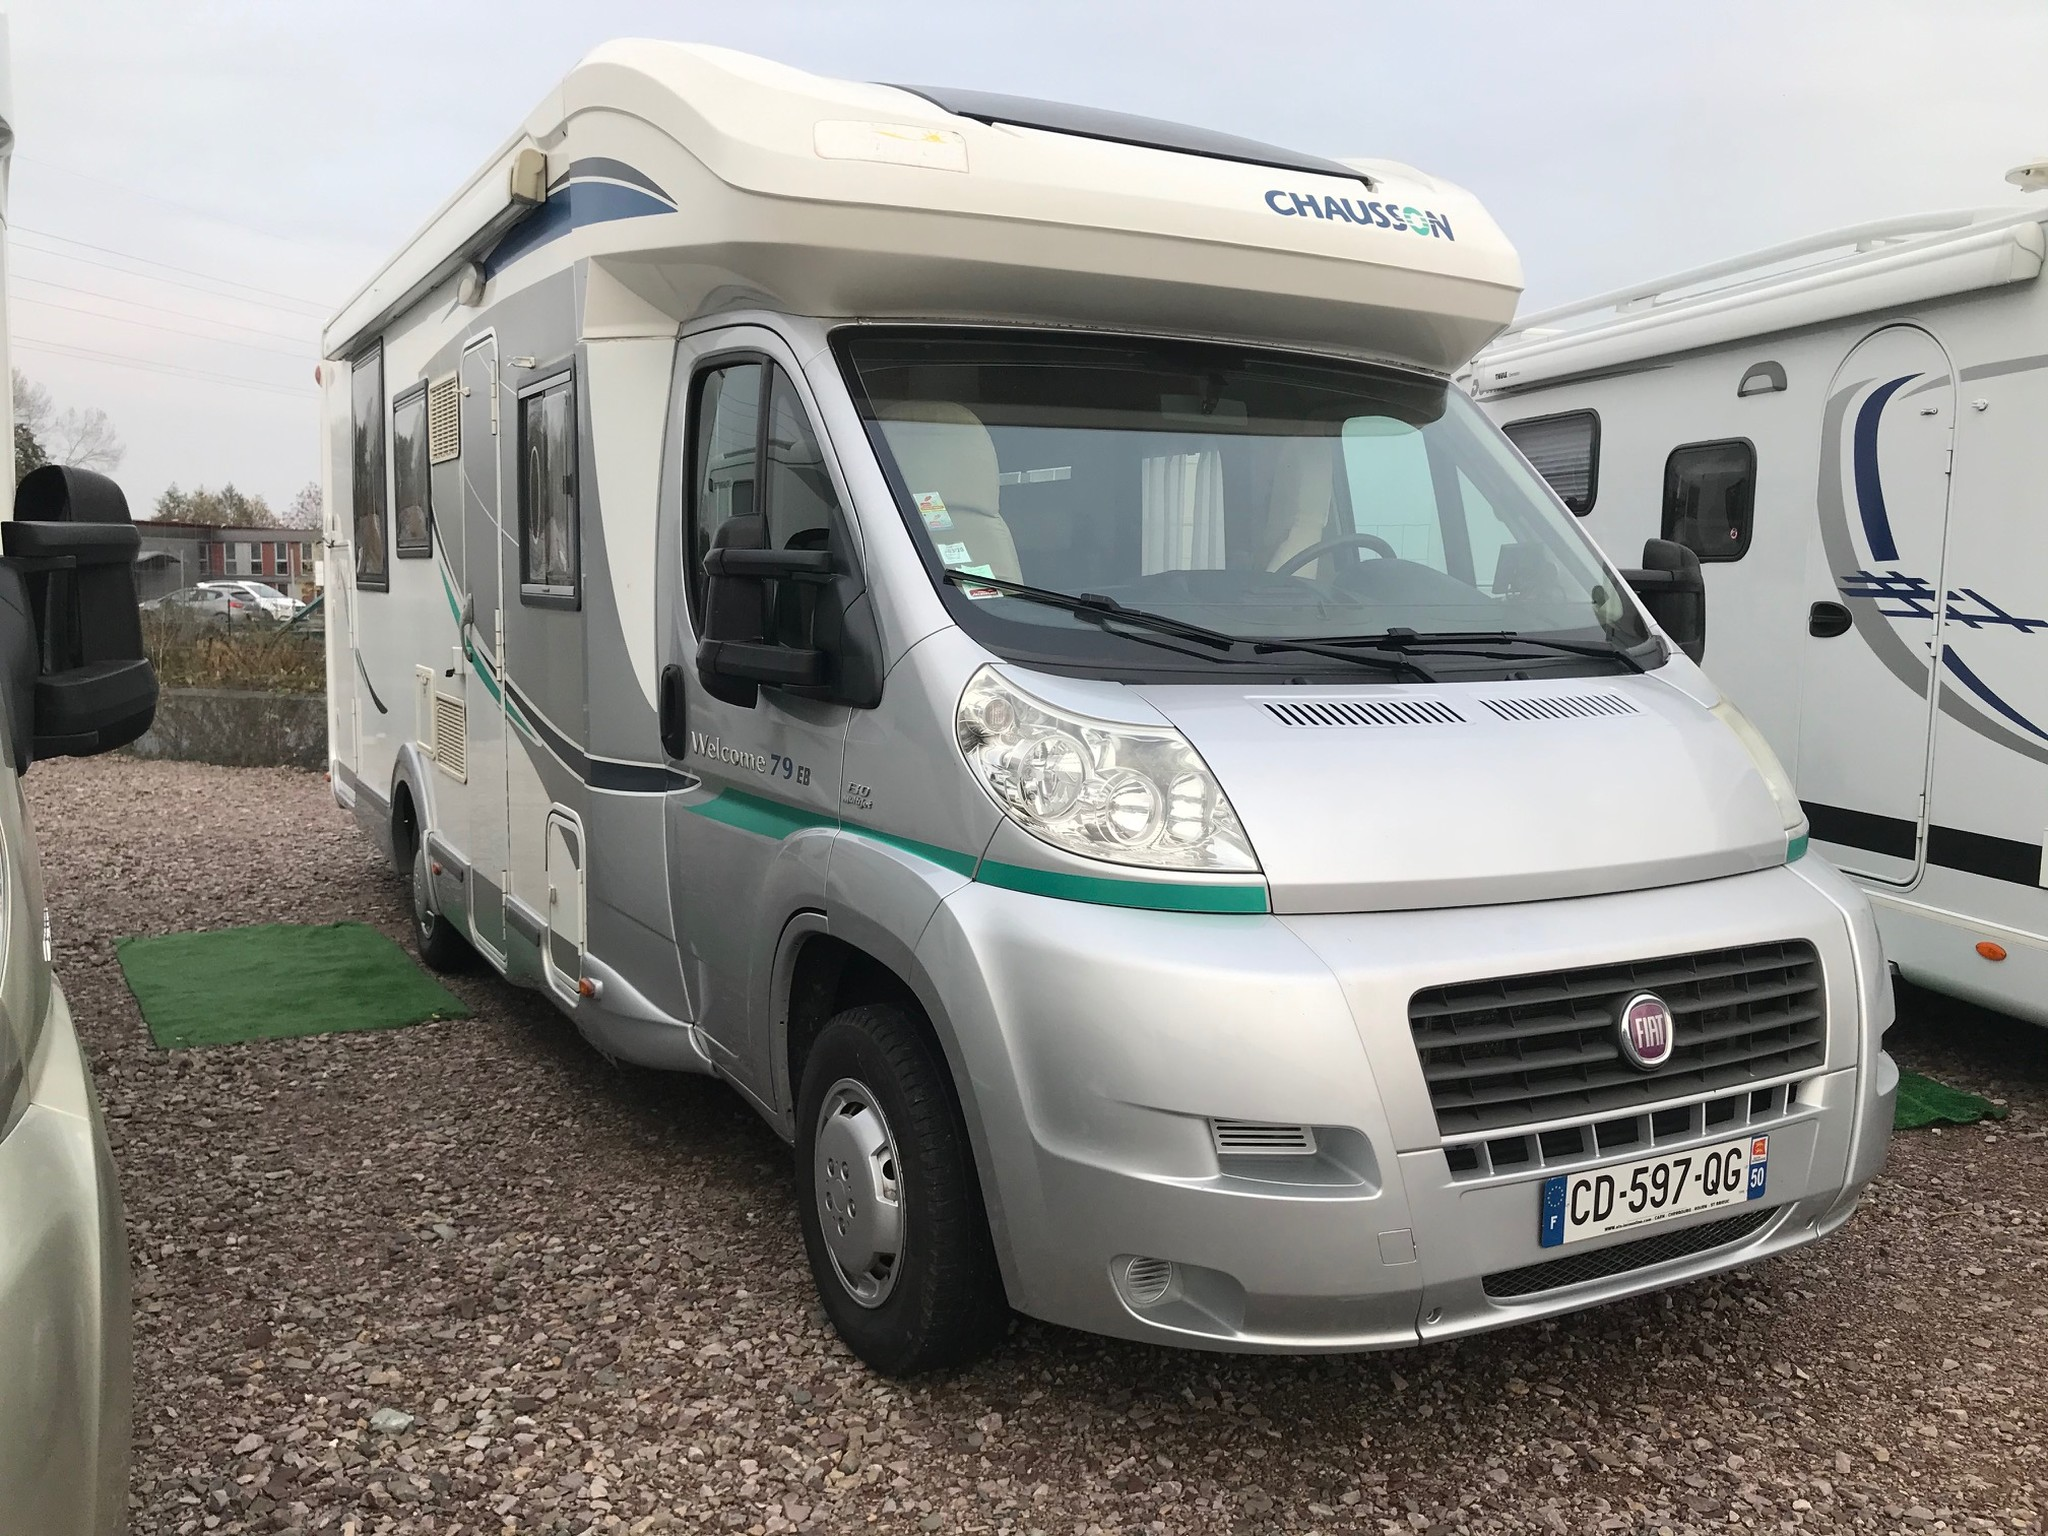 Camping-car CHAUSSON WELCOME 79 EB